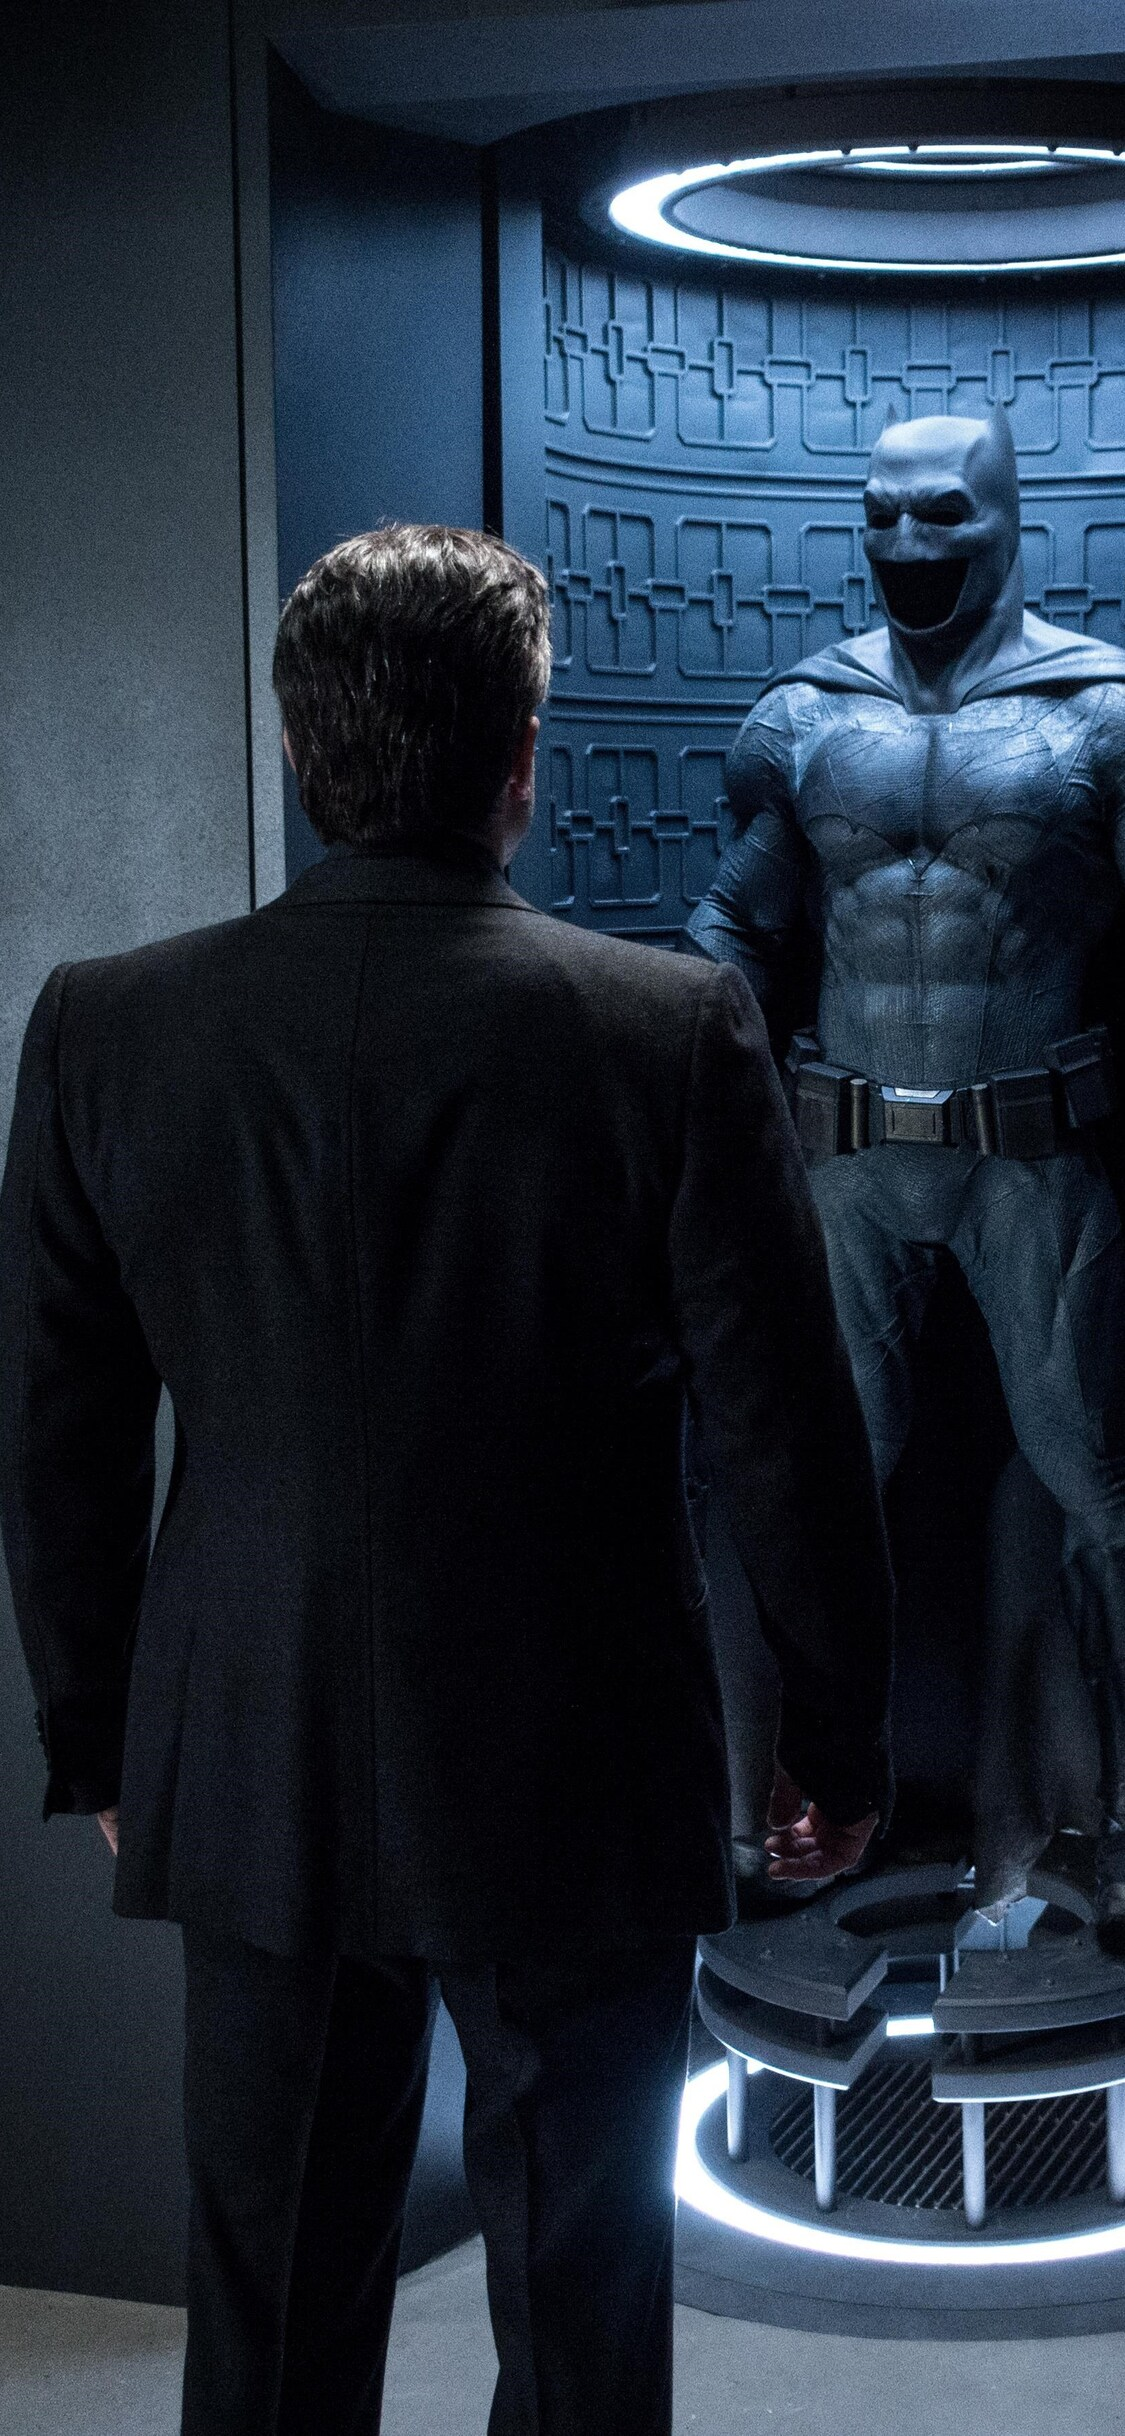 ben-affleck-in-batman-vs-superman.jpg